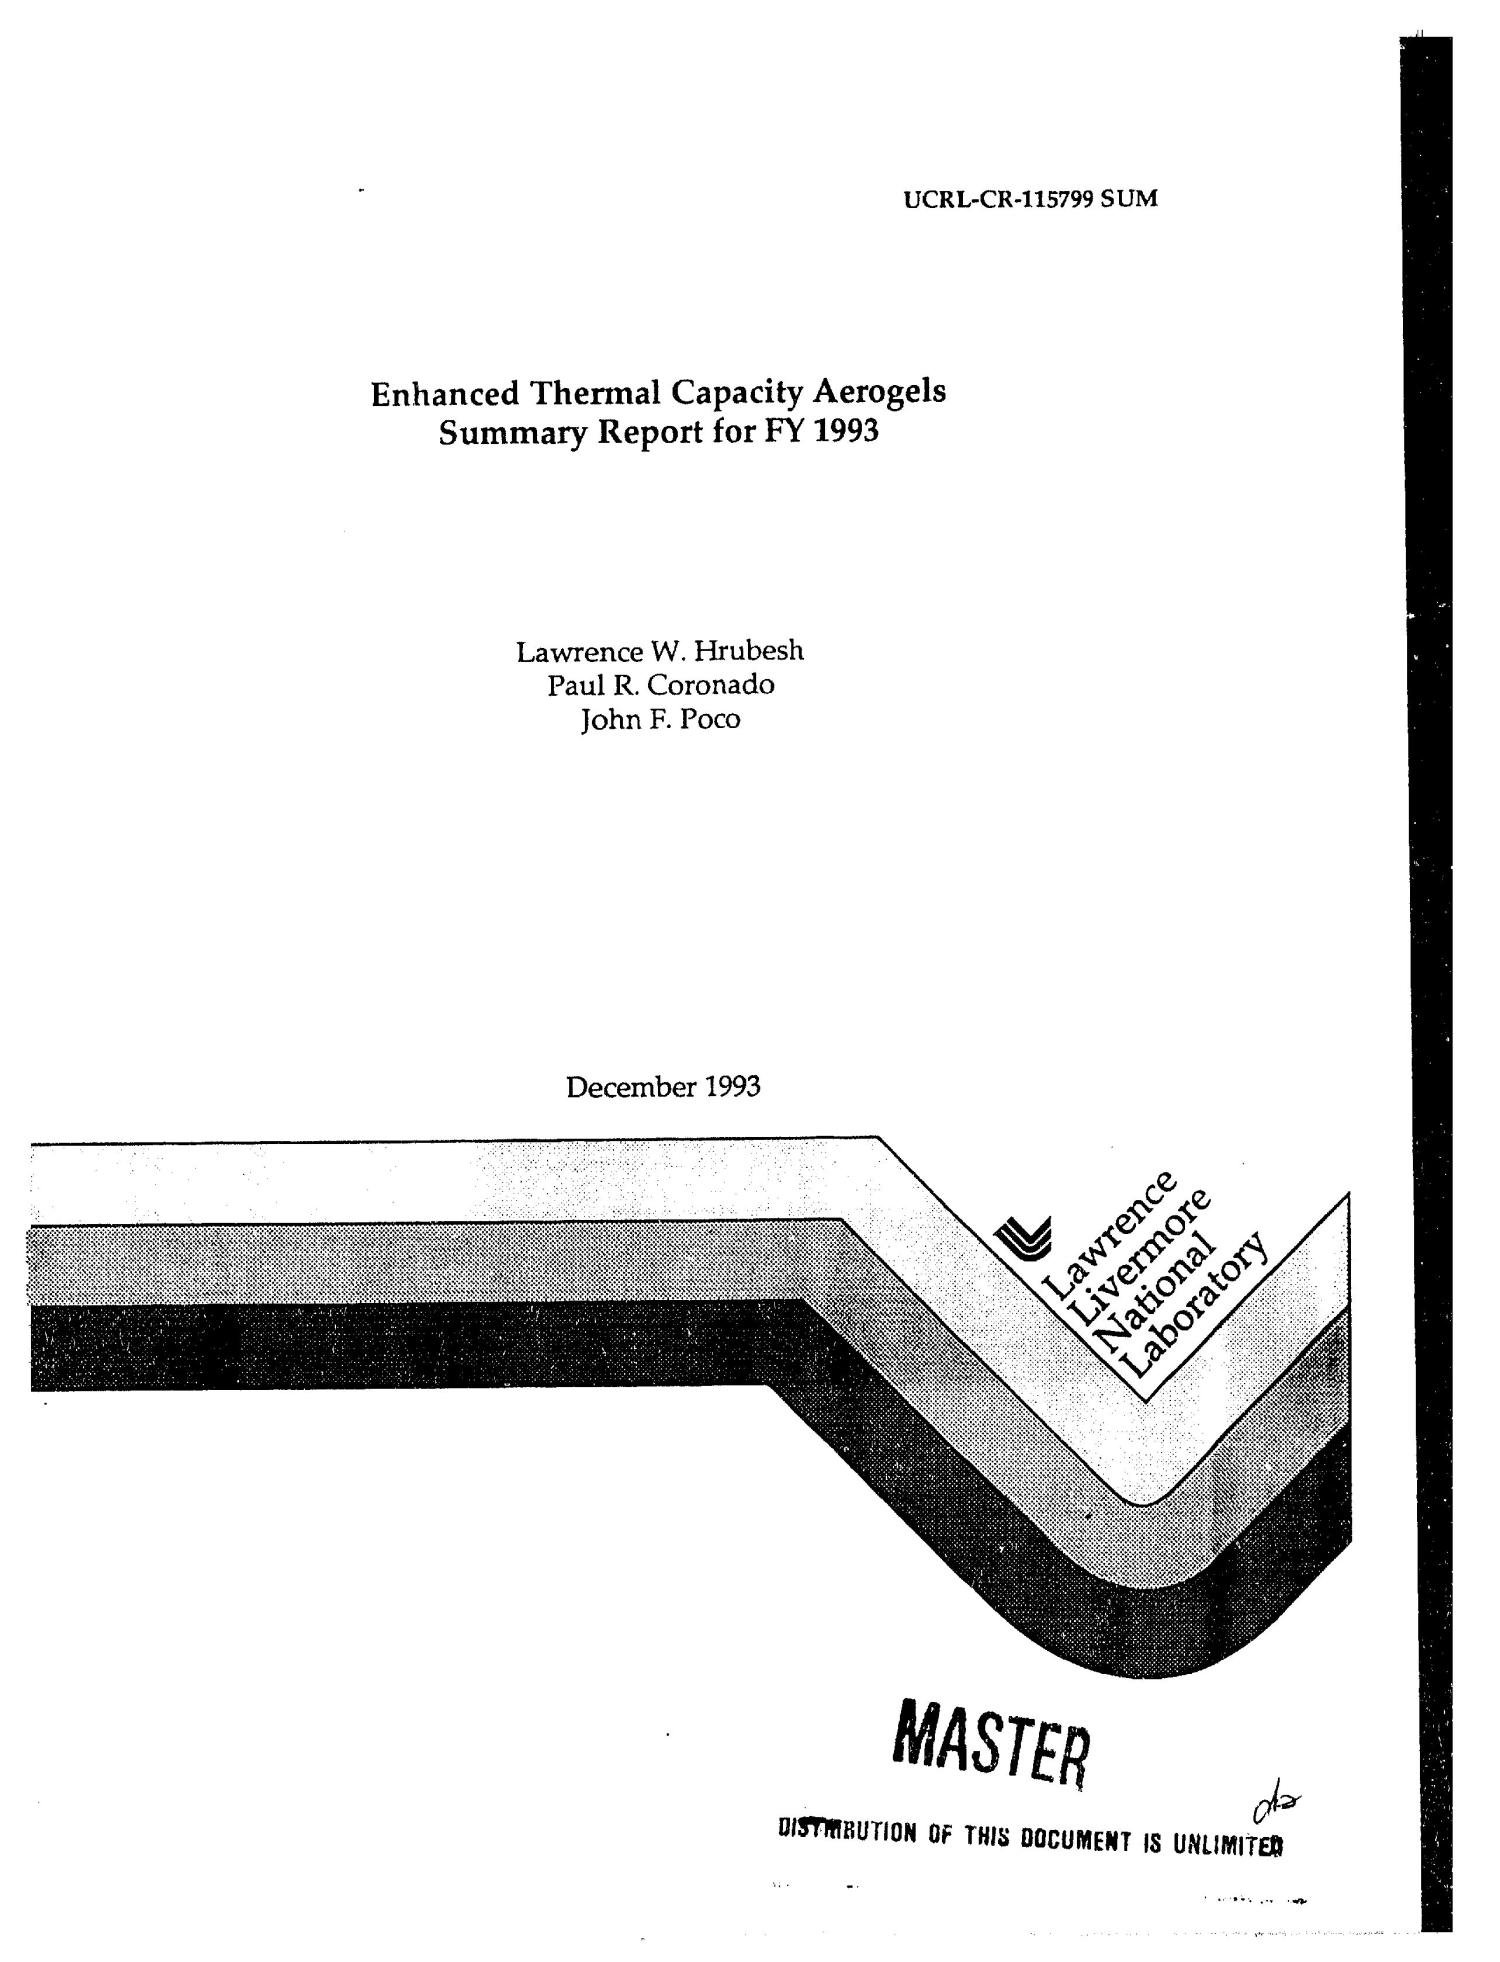 Enhanced thermal capacity aerogels summary report for FY 1993                                                                                                      [Sequence #]: 3 of 17